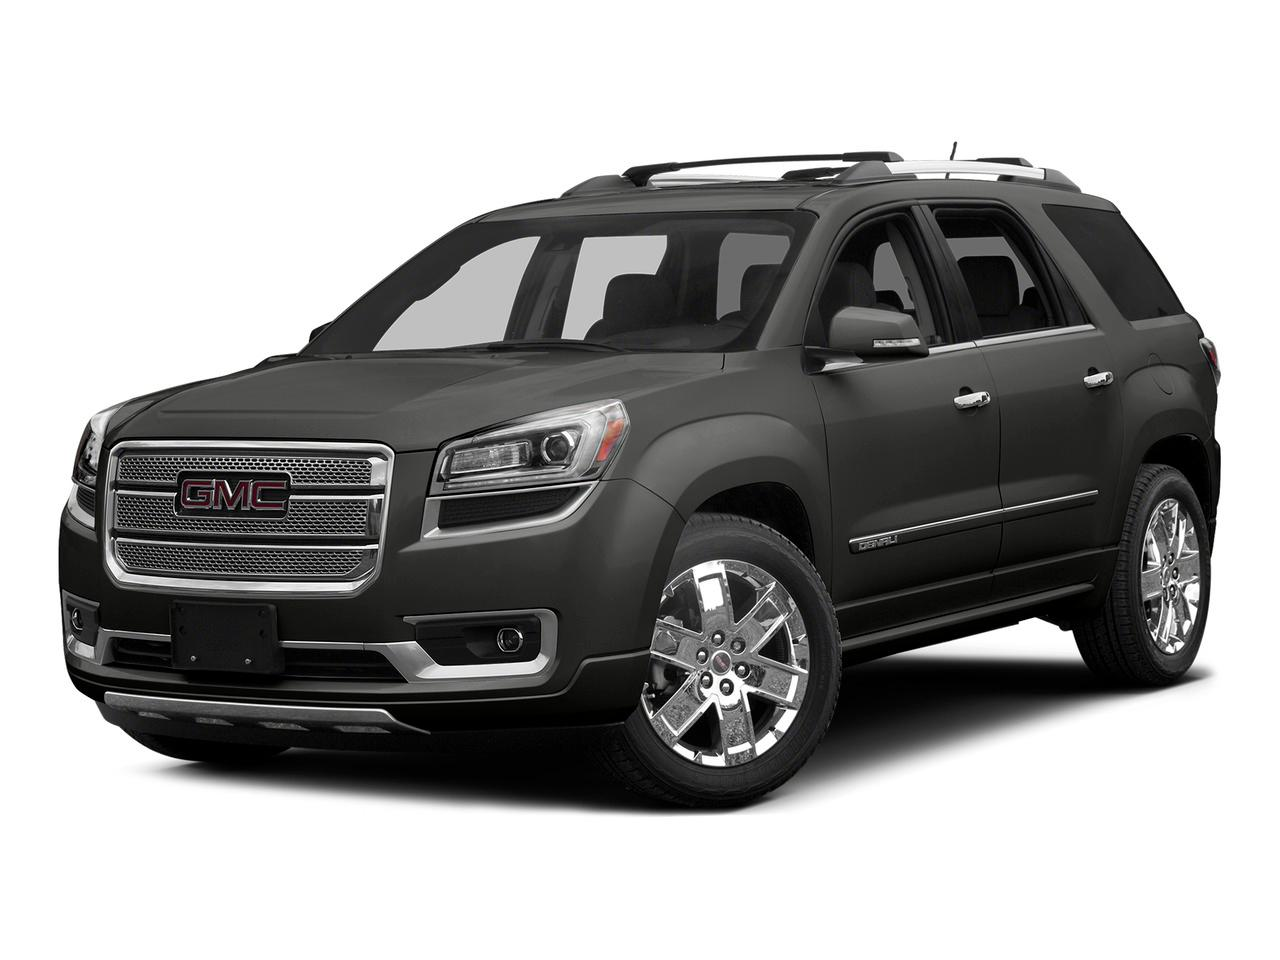 2015 GMC Acadia Vehicle Photo in Manassas, VA 20109